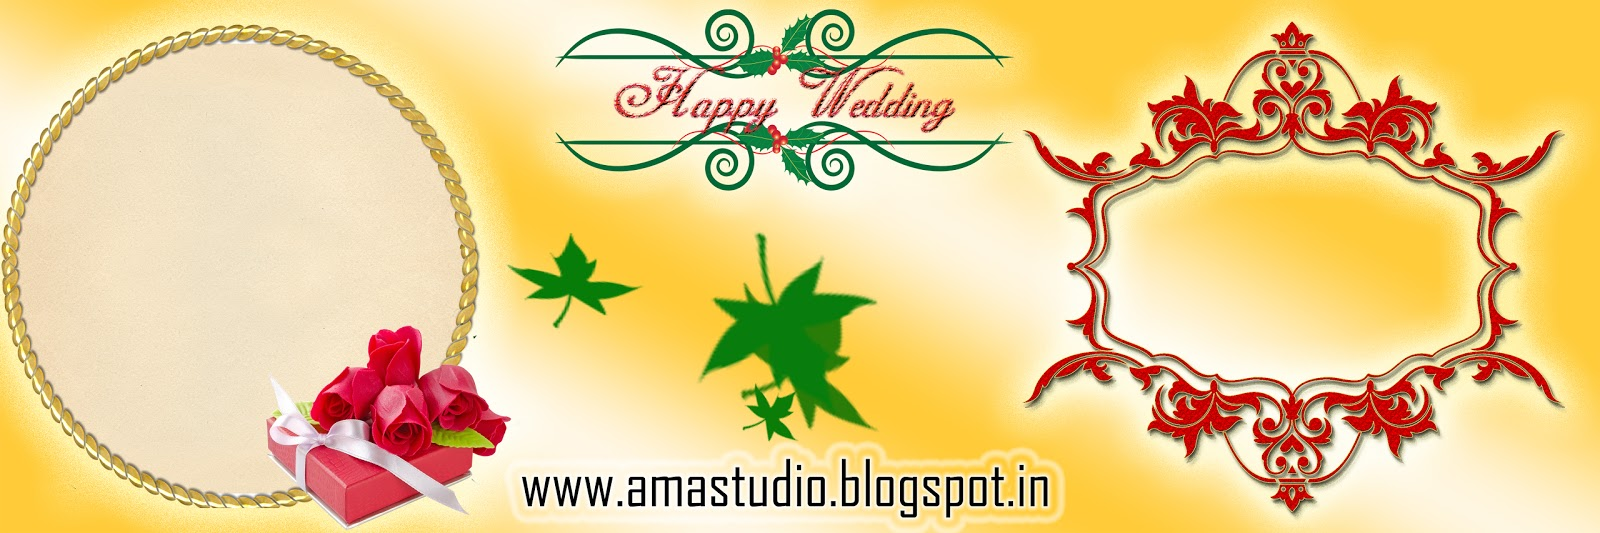 aman studio digital karizma design 13